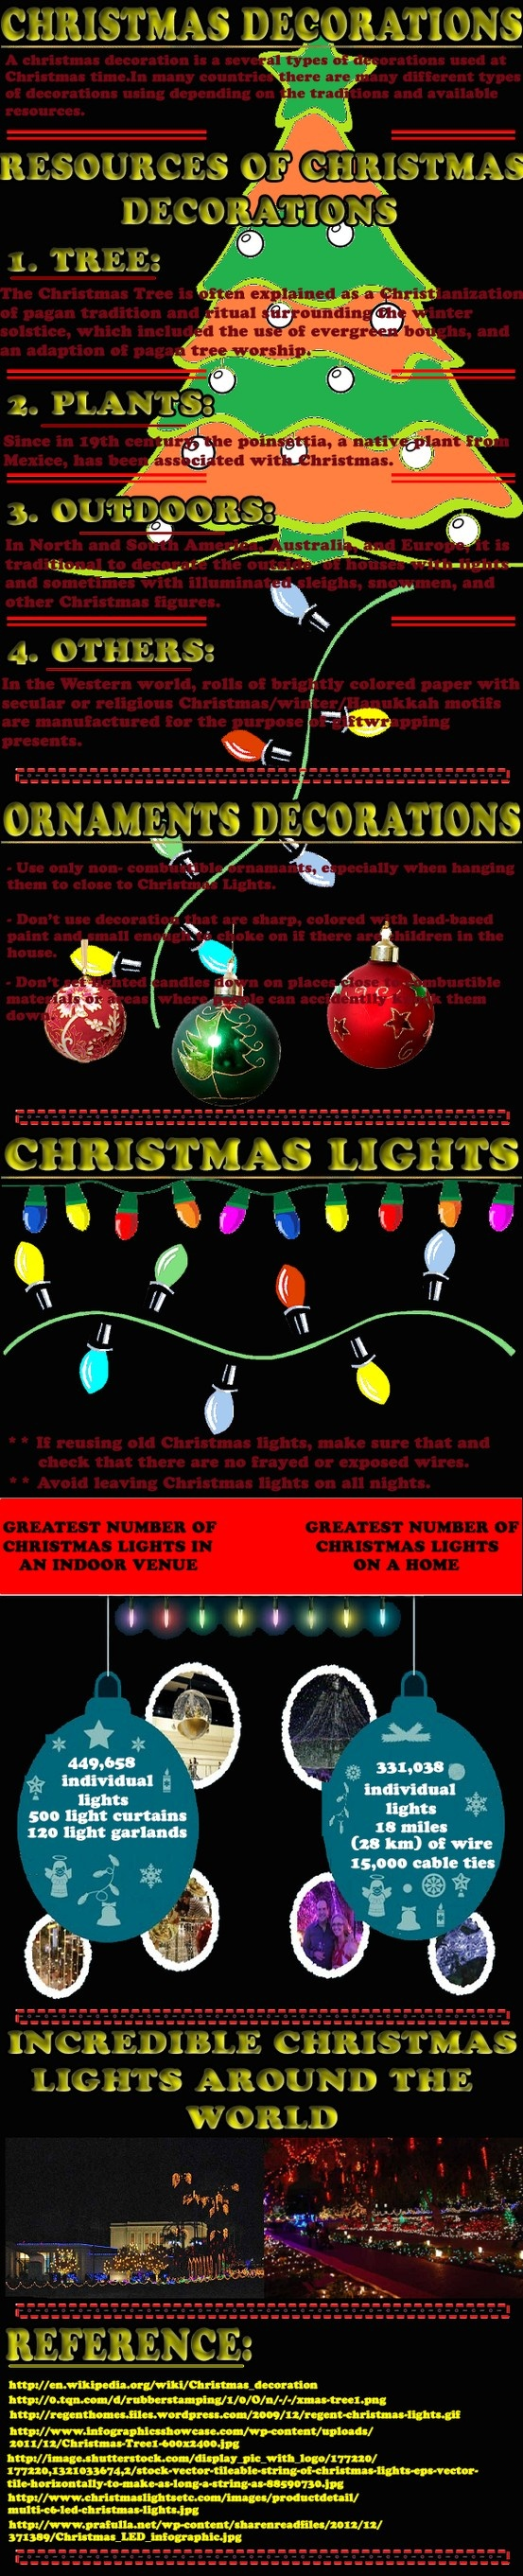 As the infograph highlights, Christmas decorations are all about fun, bling, and creating a party ambiance. Christmas Designers bring you Christmas decorations and LED Christmas lights from all categories and designs possible. Buy outdoor Christmas lights, ornamental decorations, Christmas plants/ trees, LED Christmas light strings and more from their big resource of Christmas décor and Christmas lights online.